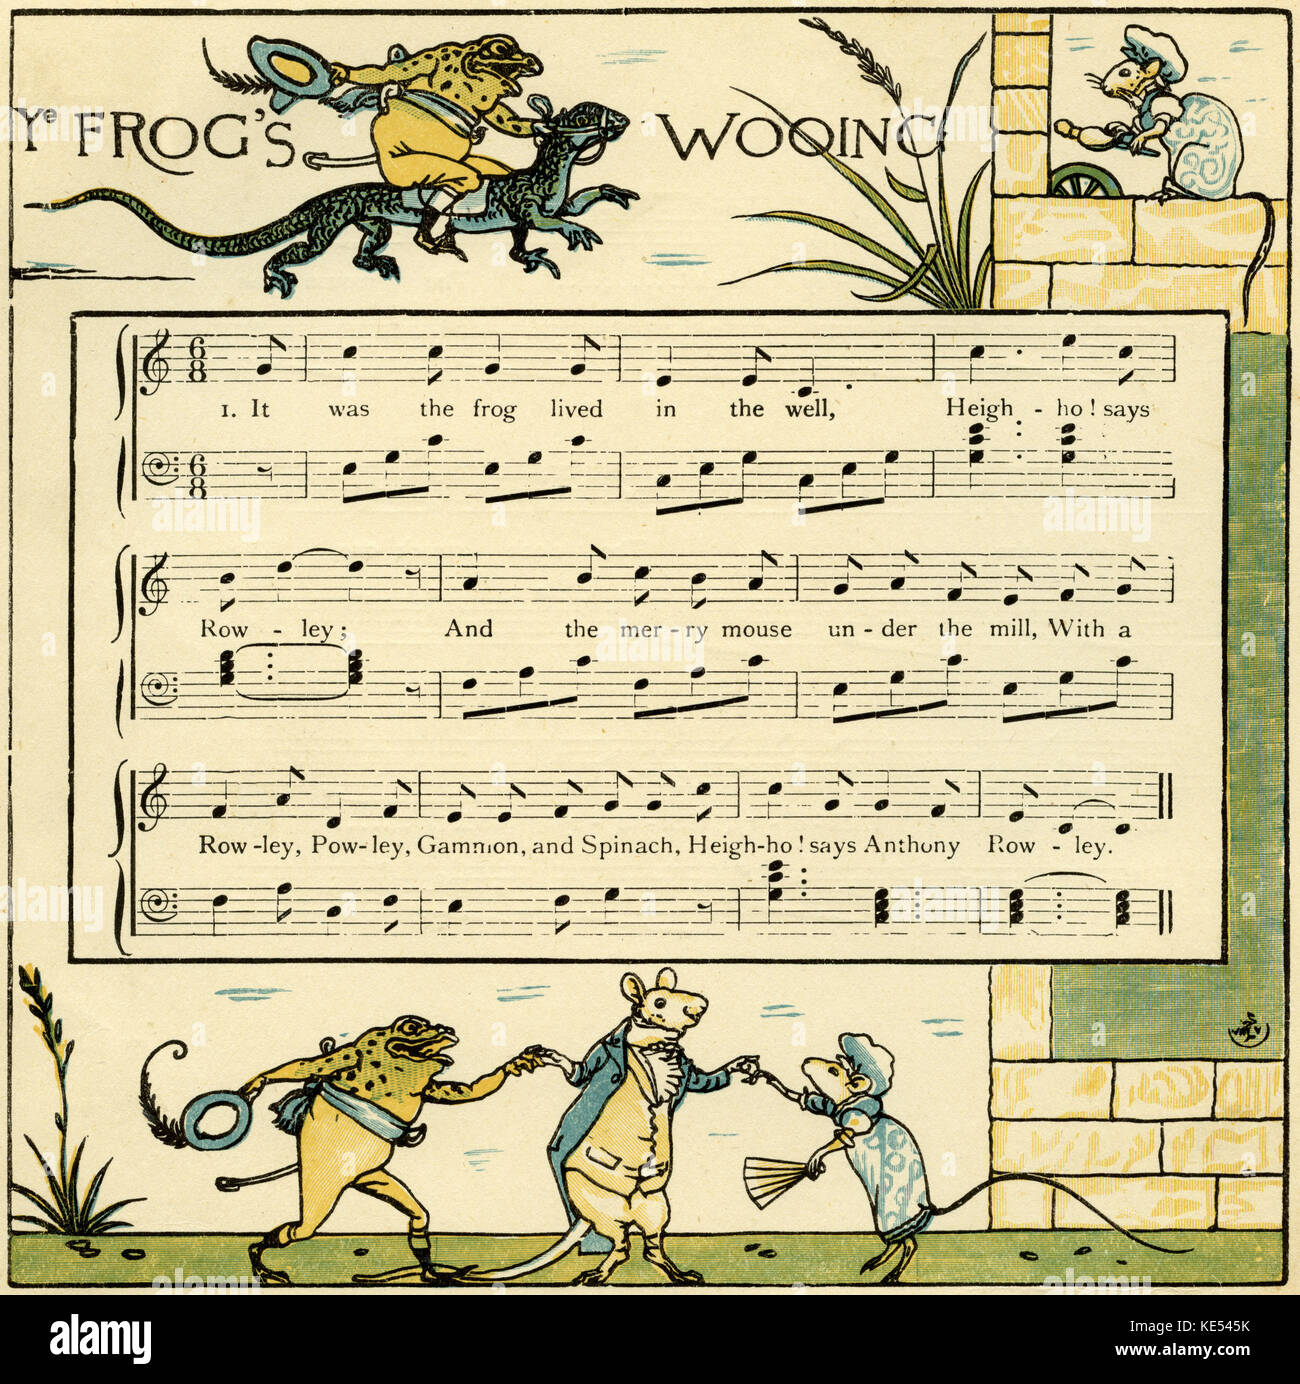 The frog's wooing, nursery rhyme score , illustration (1877) by Walter Crane. English artist of Arts and Crafts - Stock Image